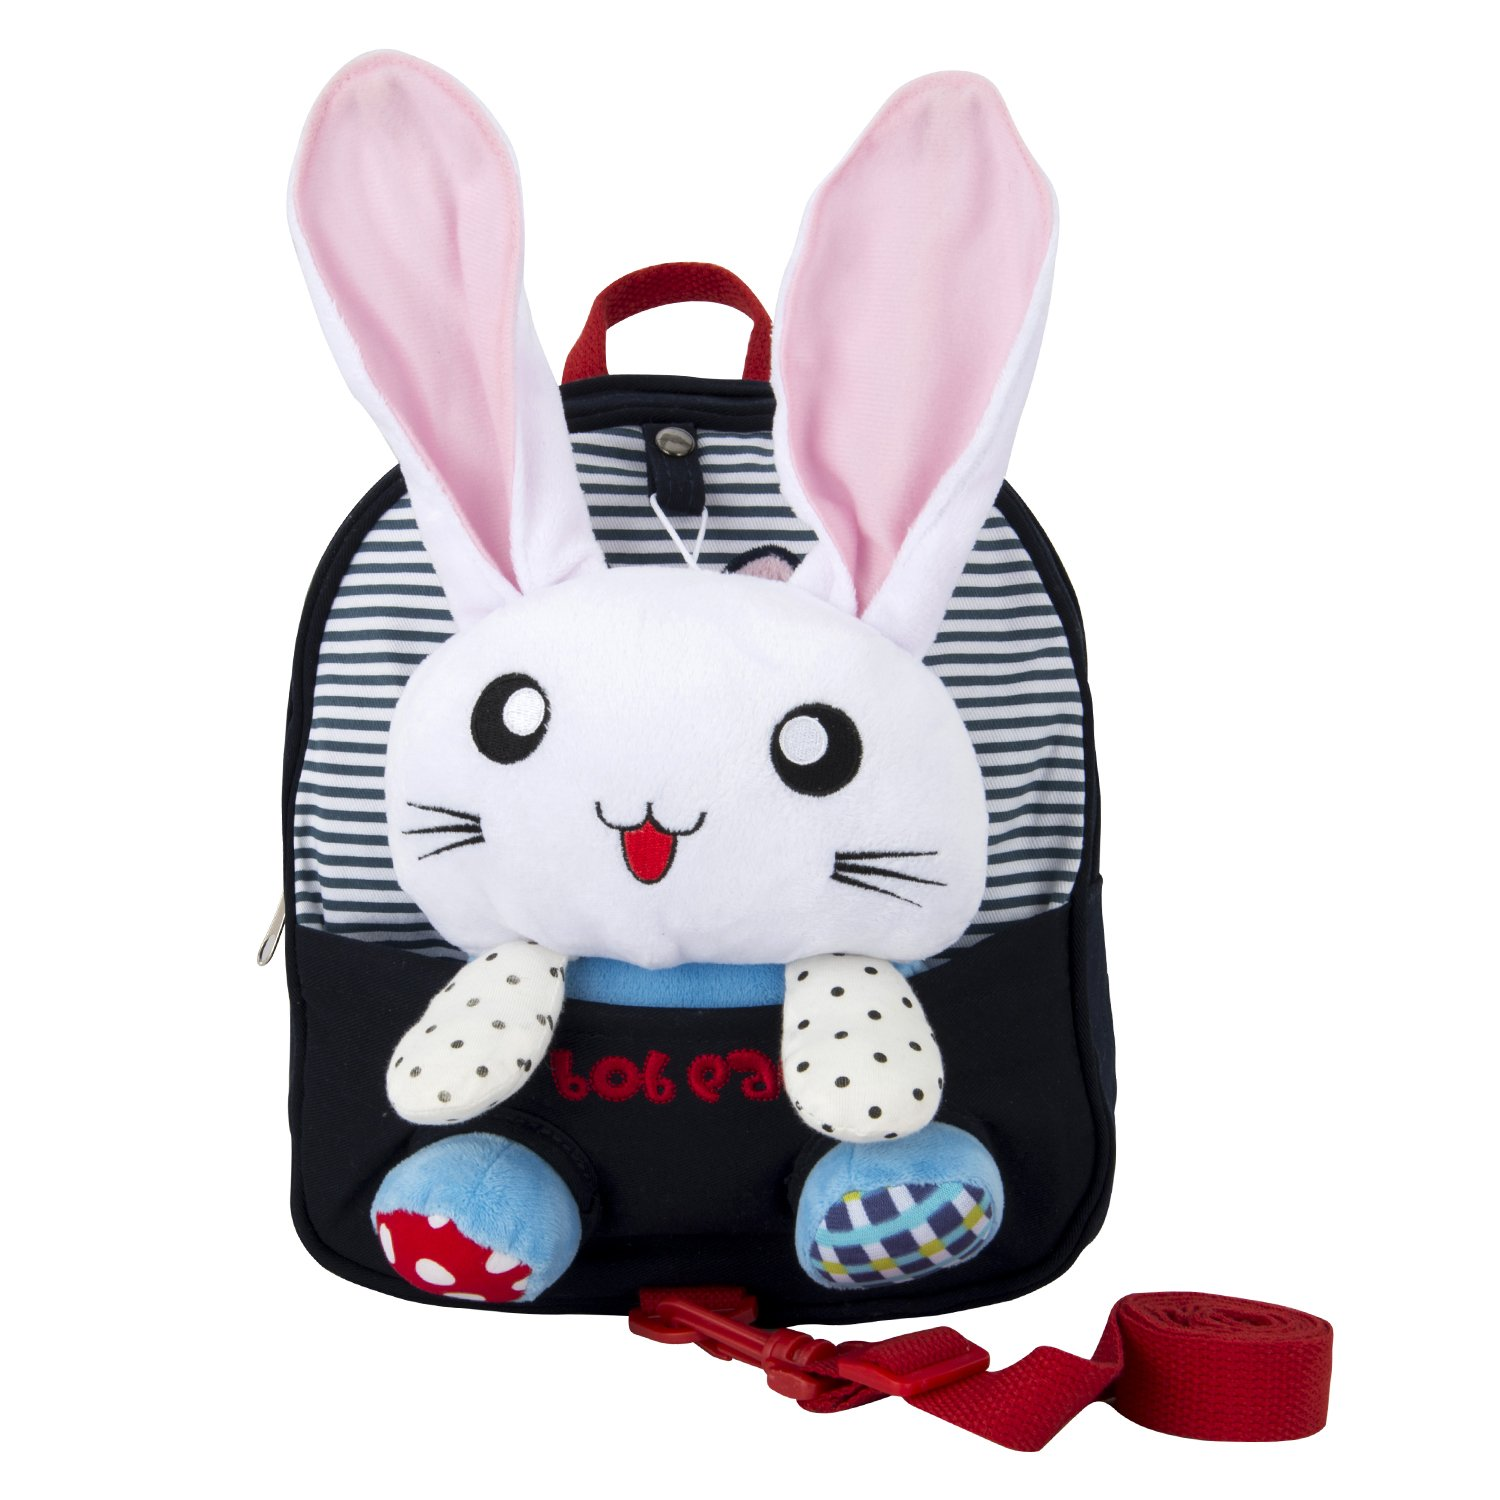 Coavas Baby Safety Harness Backpack 1-3 Y Kids Backpack with Leash and Removable Stuffed Animals Rabbit